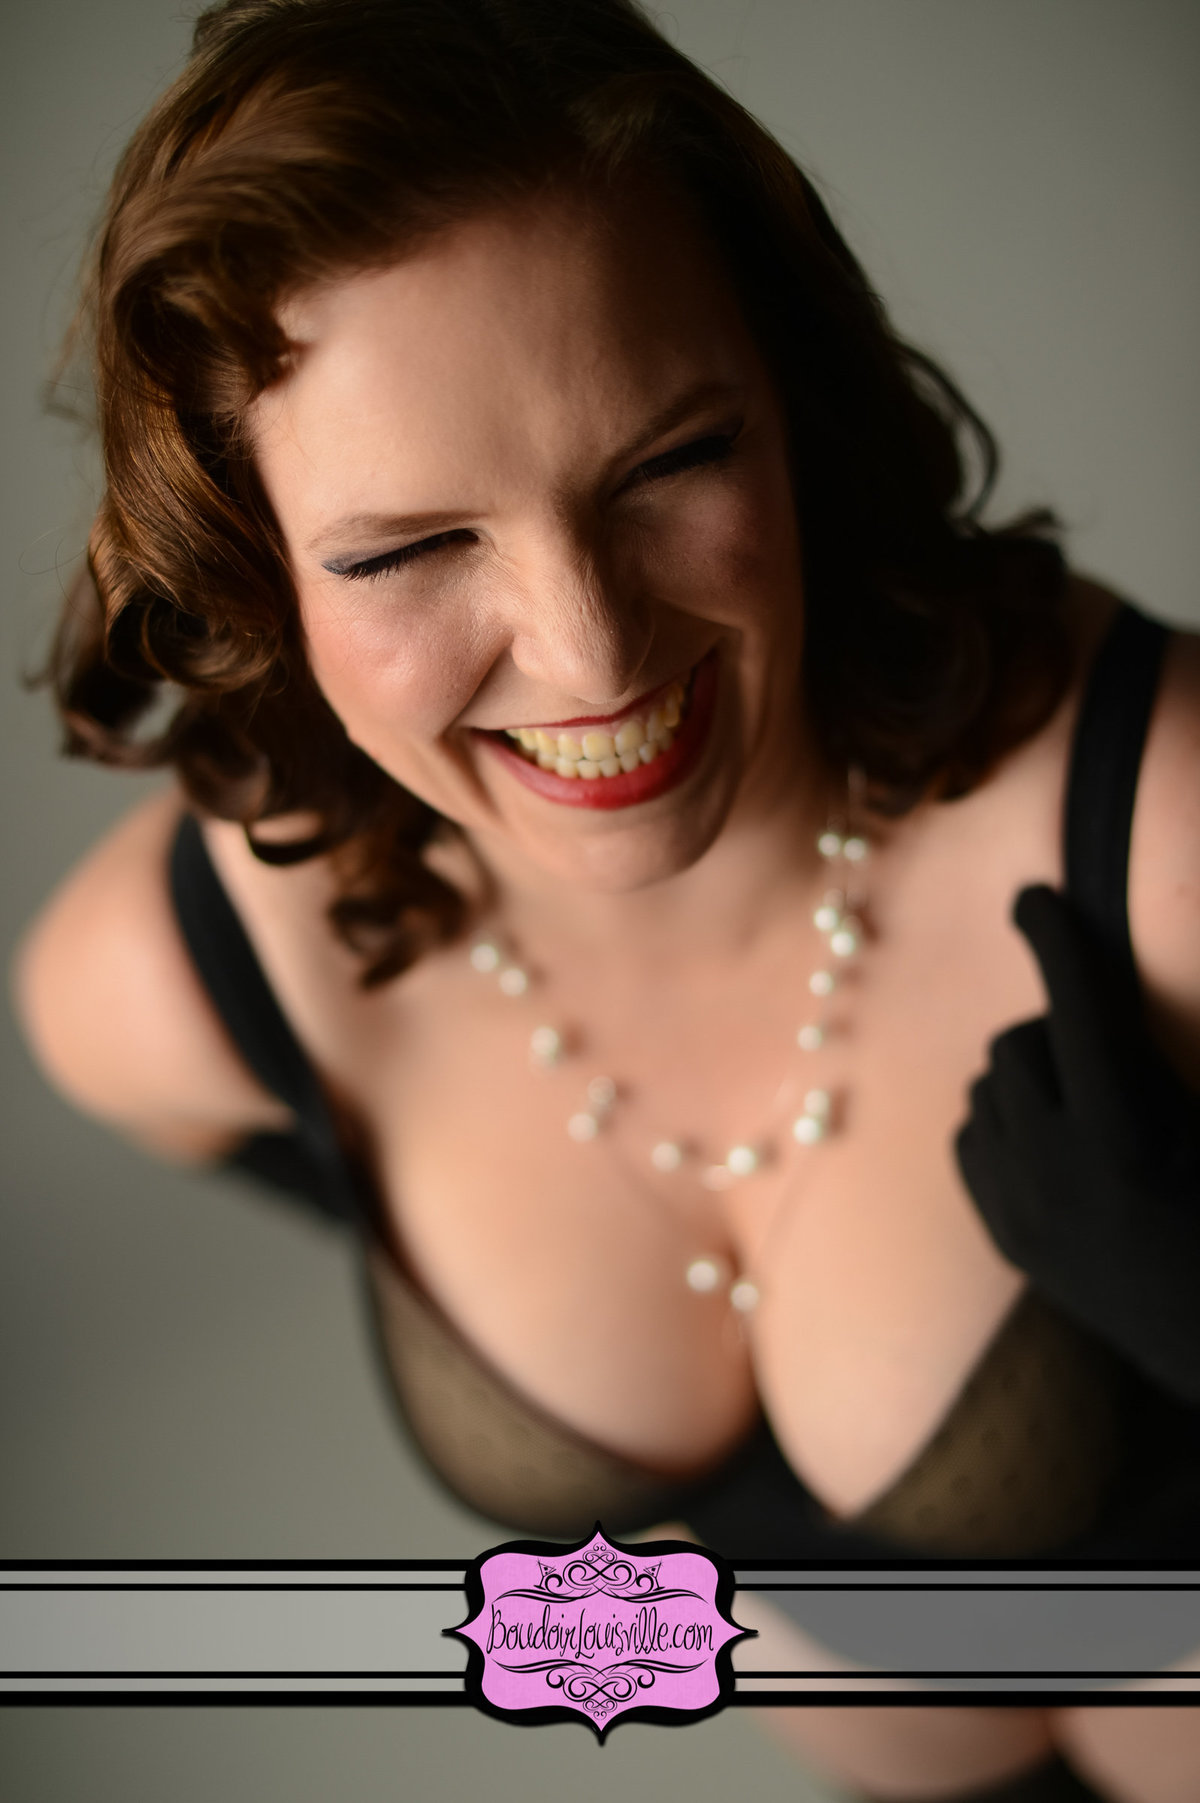 Boudoir Louisville - Boudoir Photography Studio-393